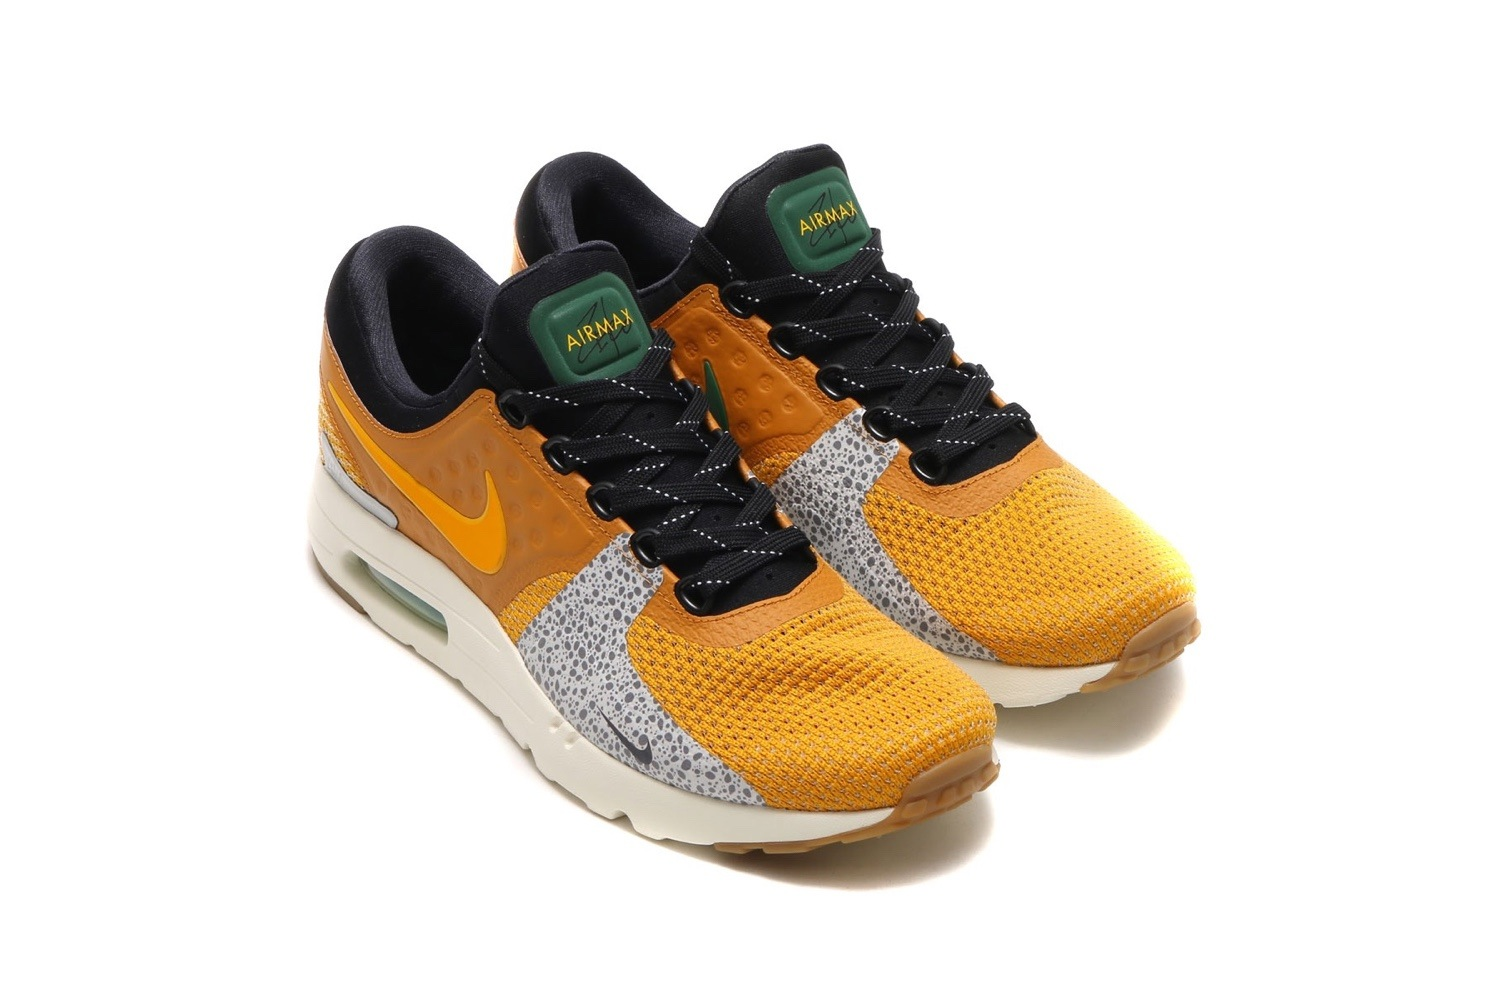 atmos NIKEiD Air Max Zero Safari and Tiger Camo